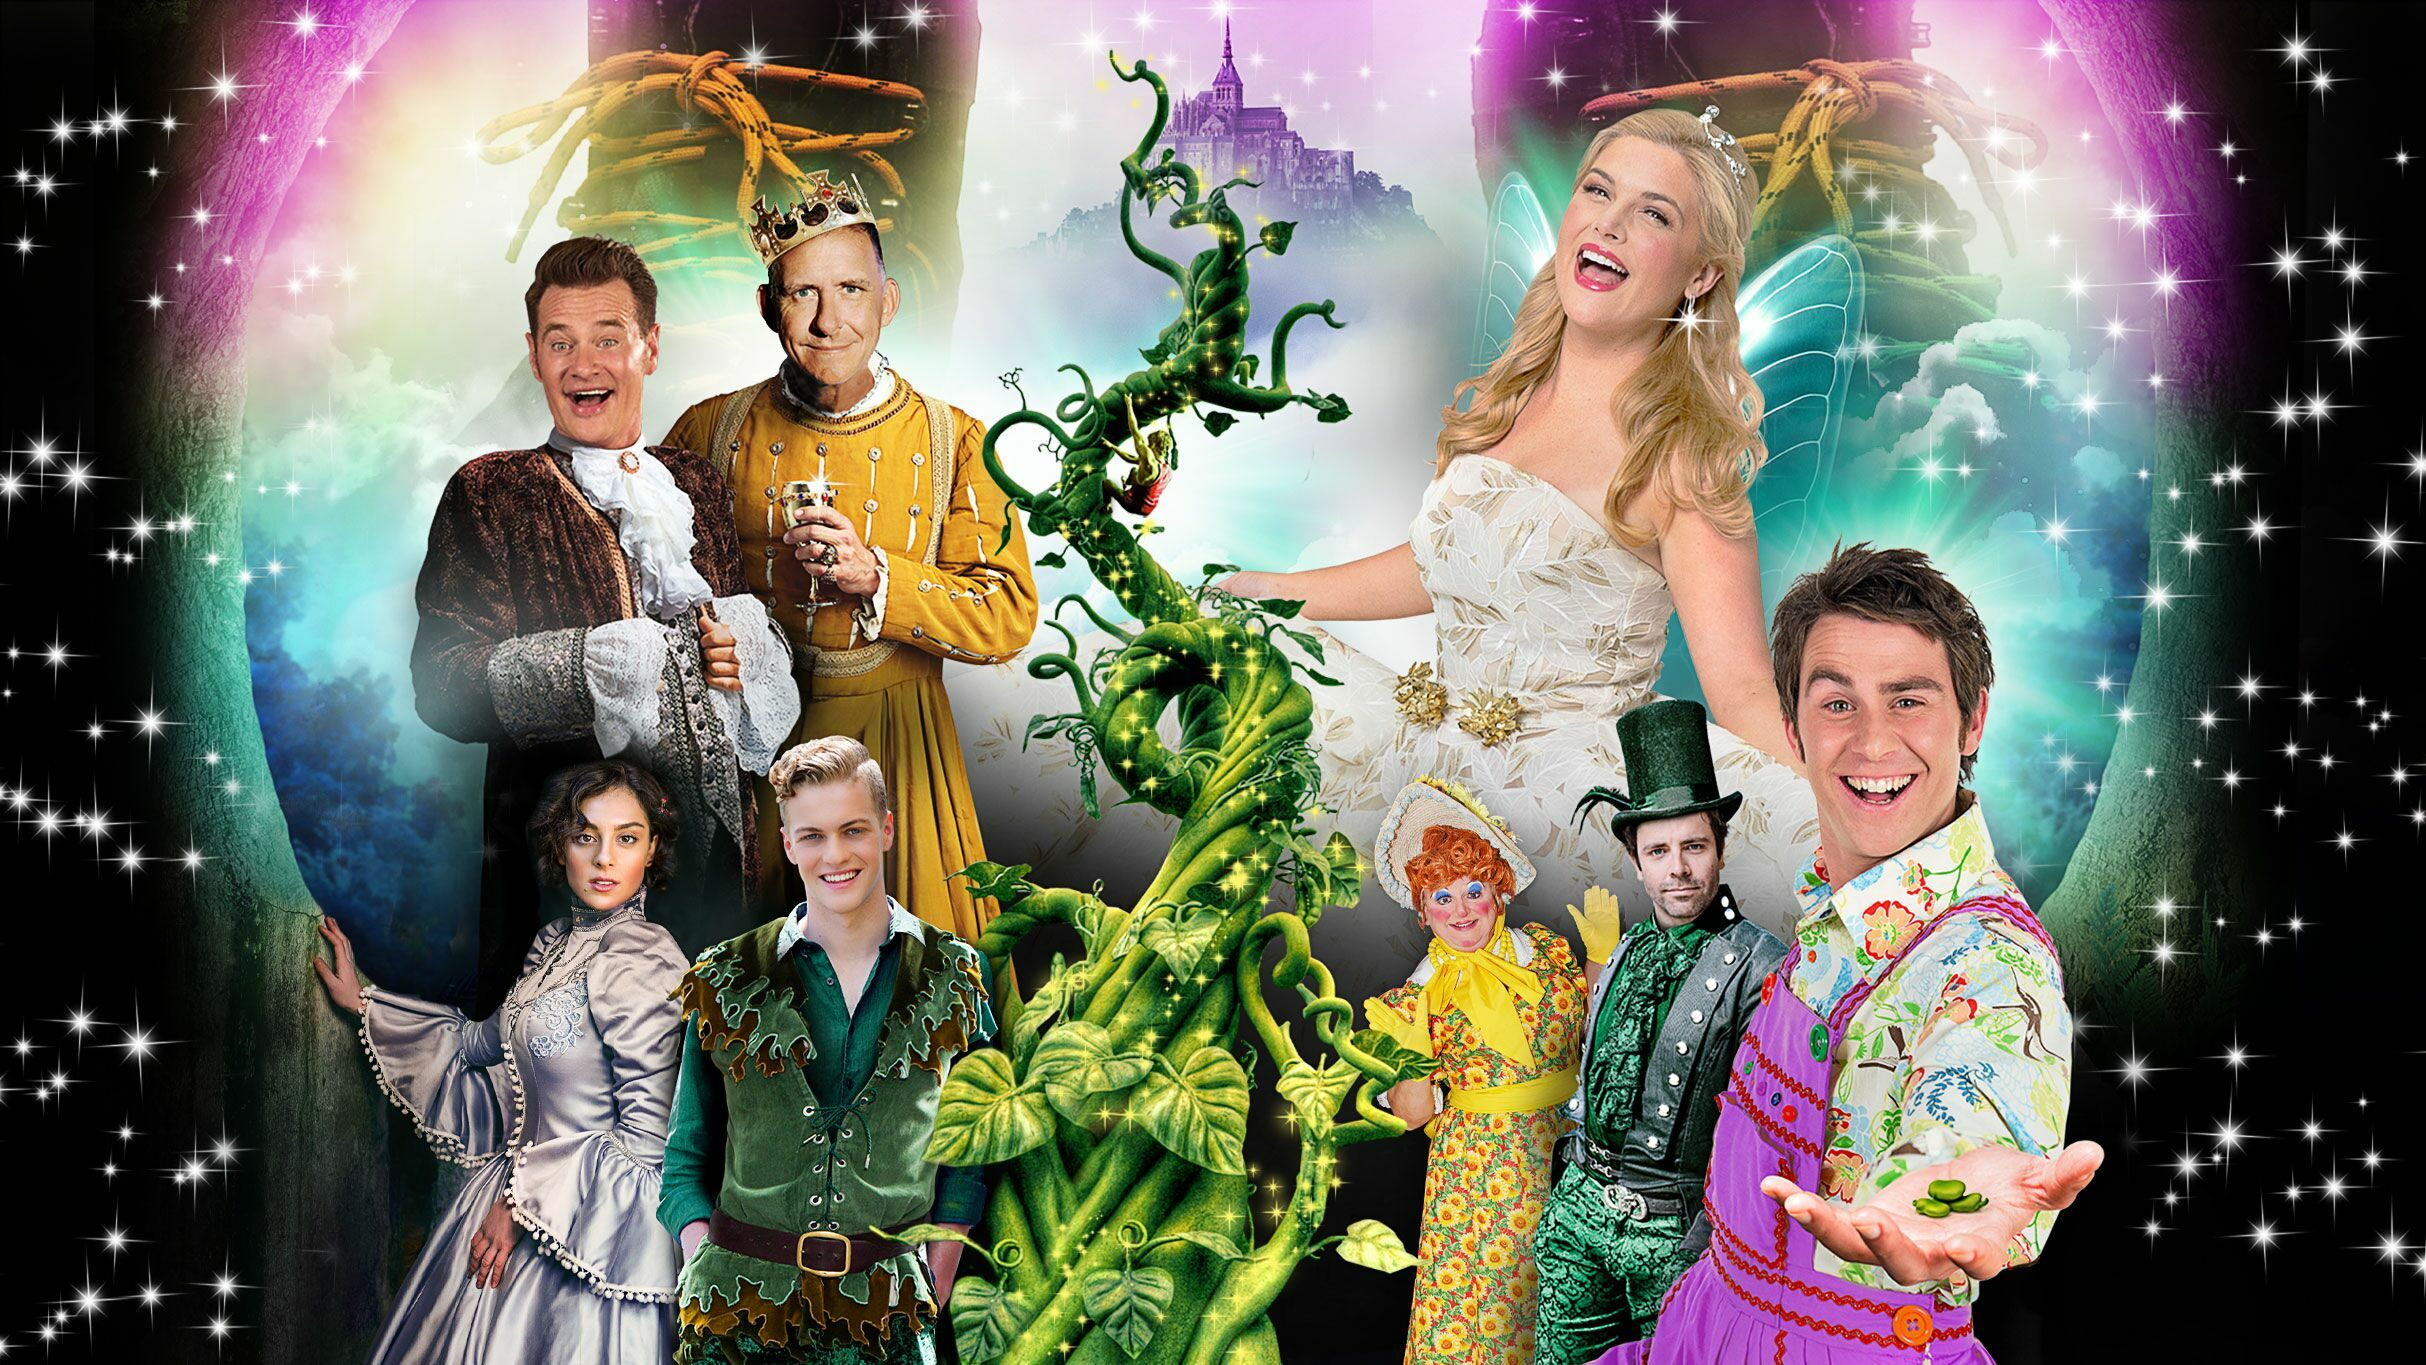 Jack And The Beanstalk 3D